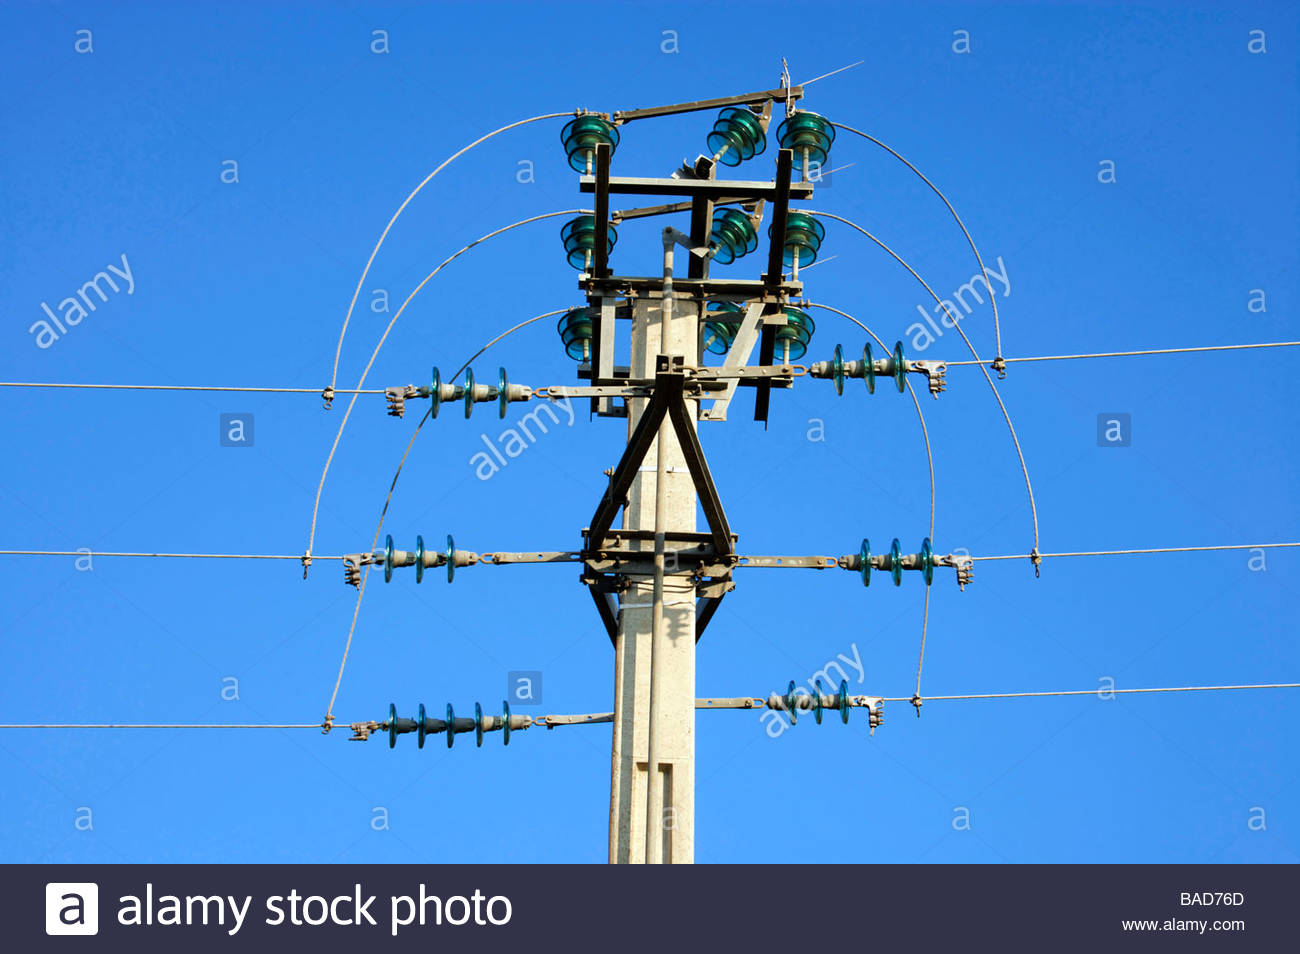 electricity wires with pole and bridge switch - Stock Image